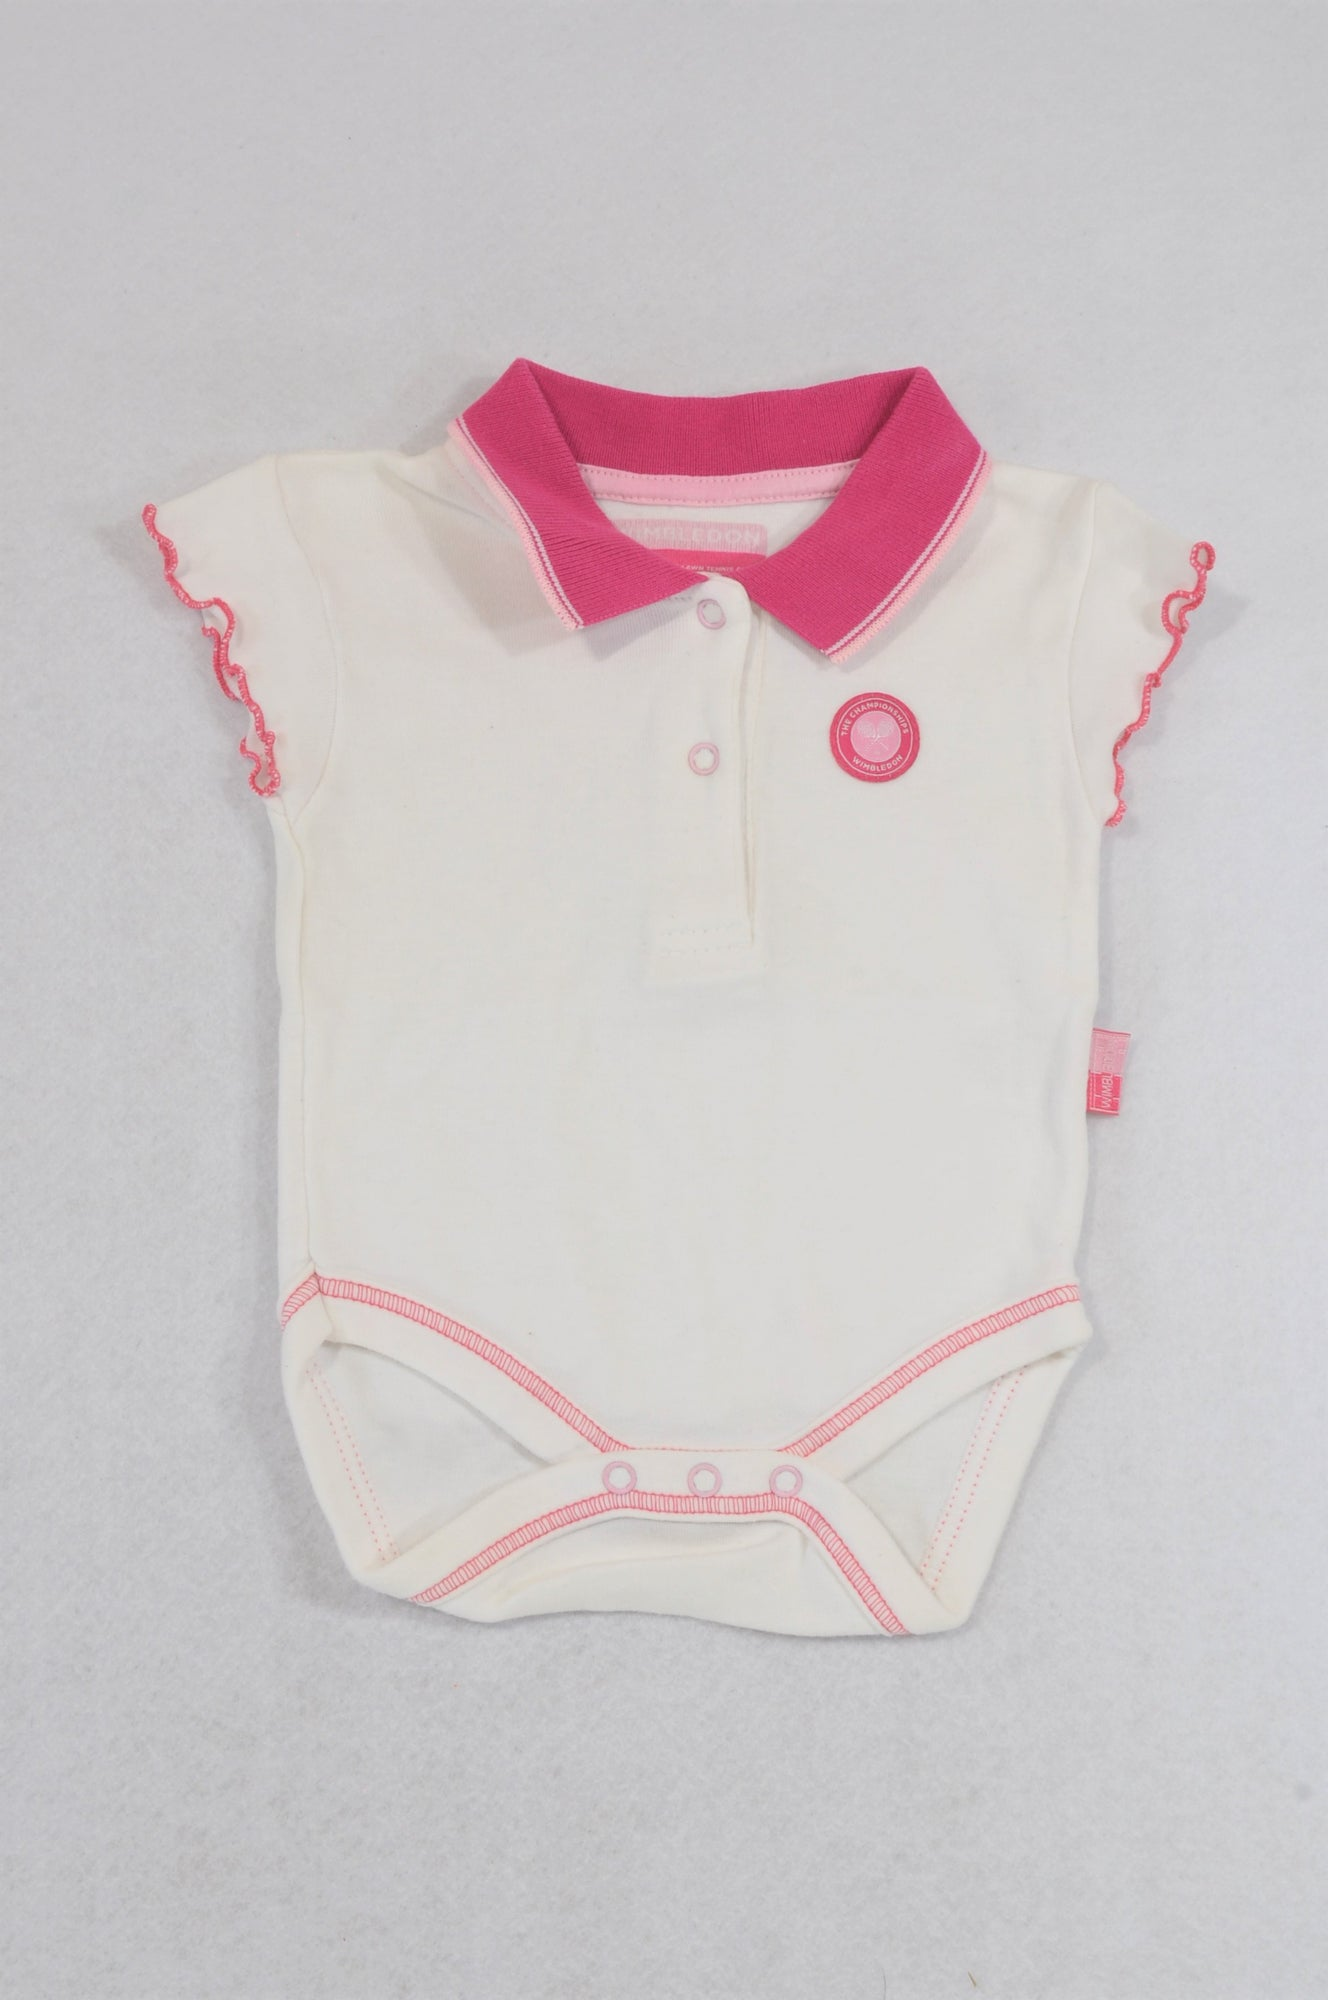 Wimbledon White Cerise Collared Baby Grow Girls 3-6 months